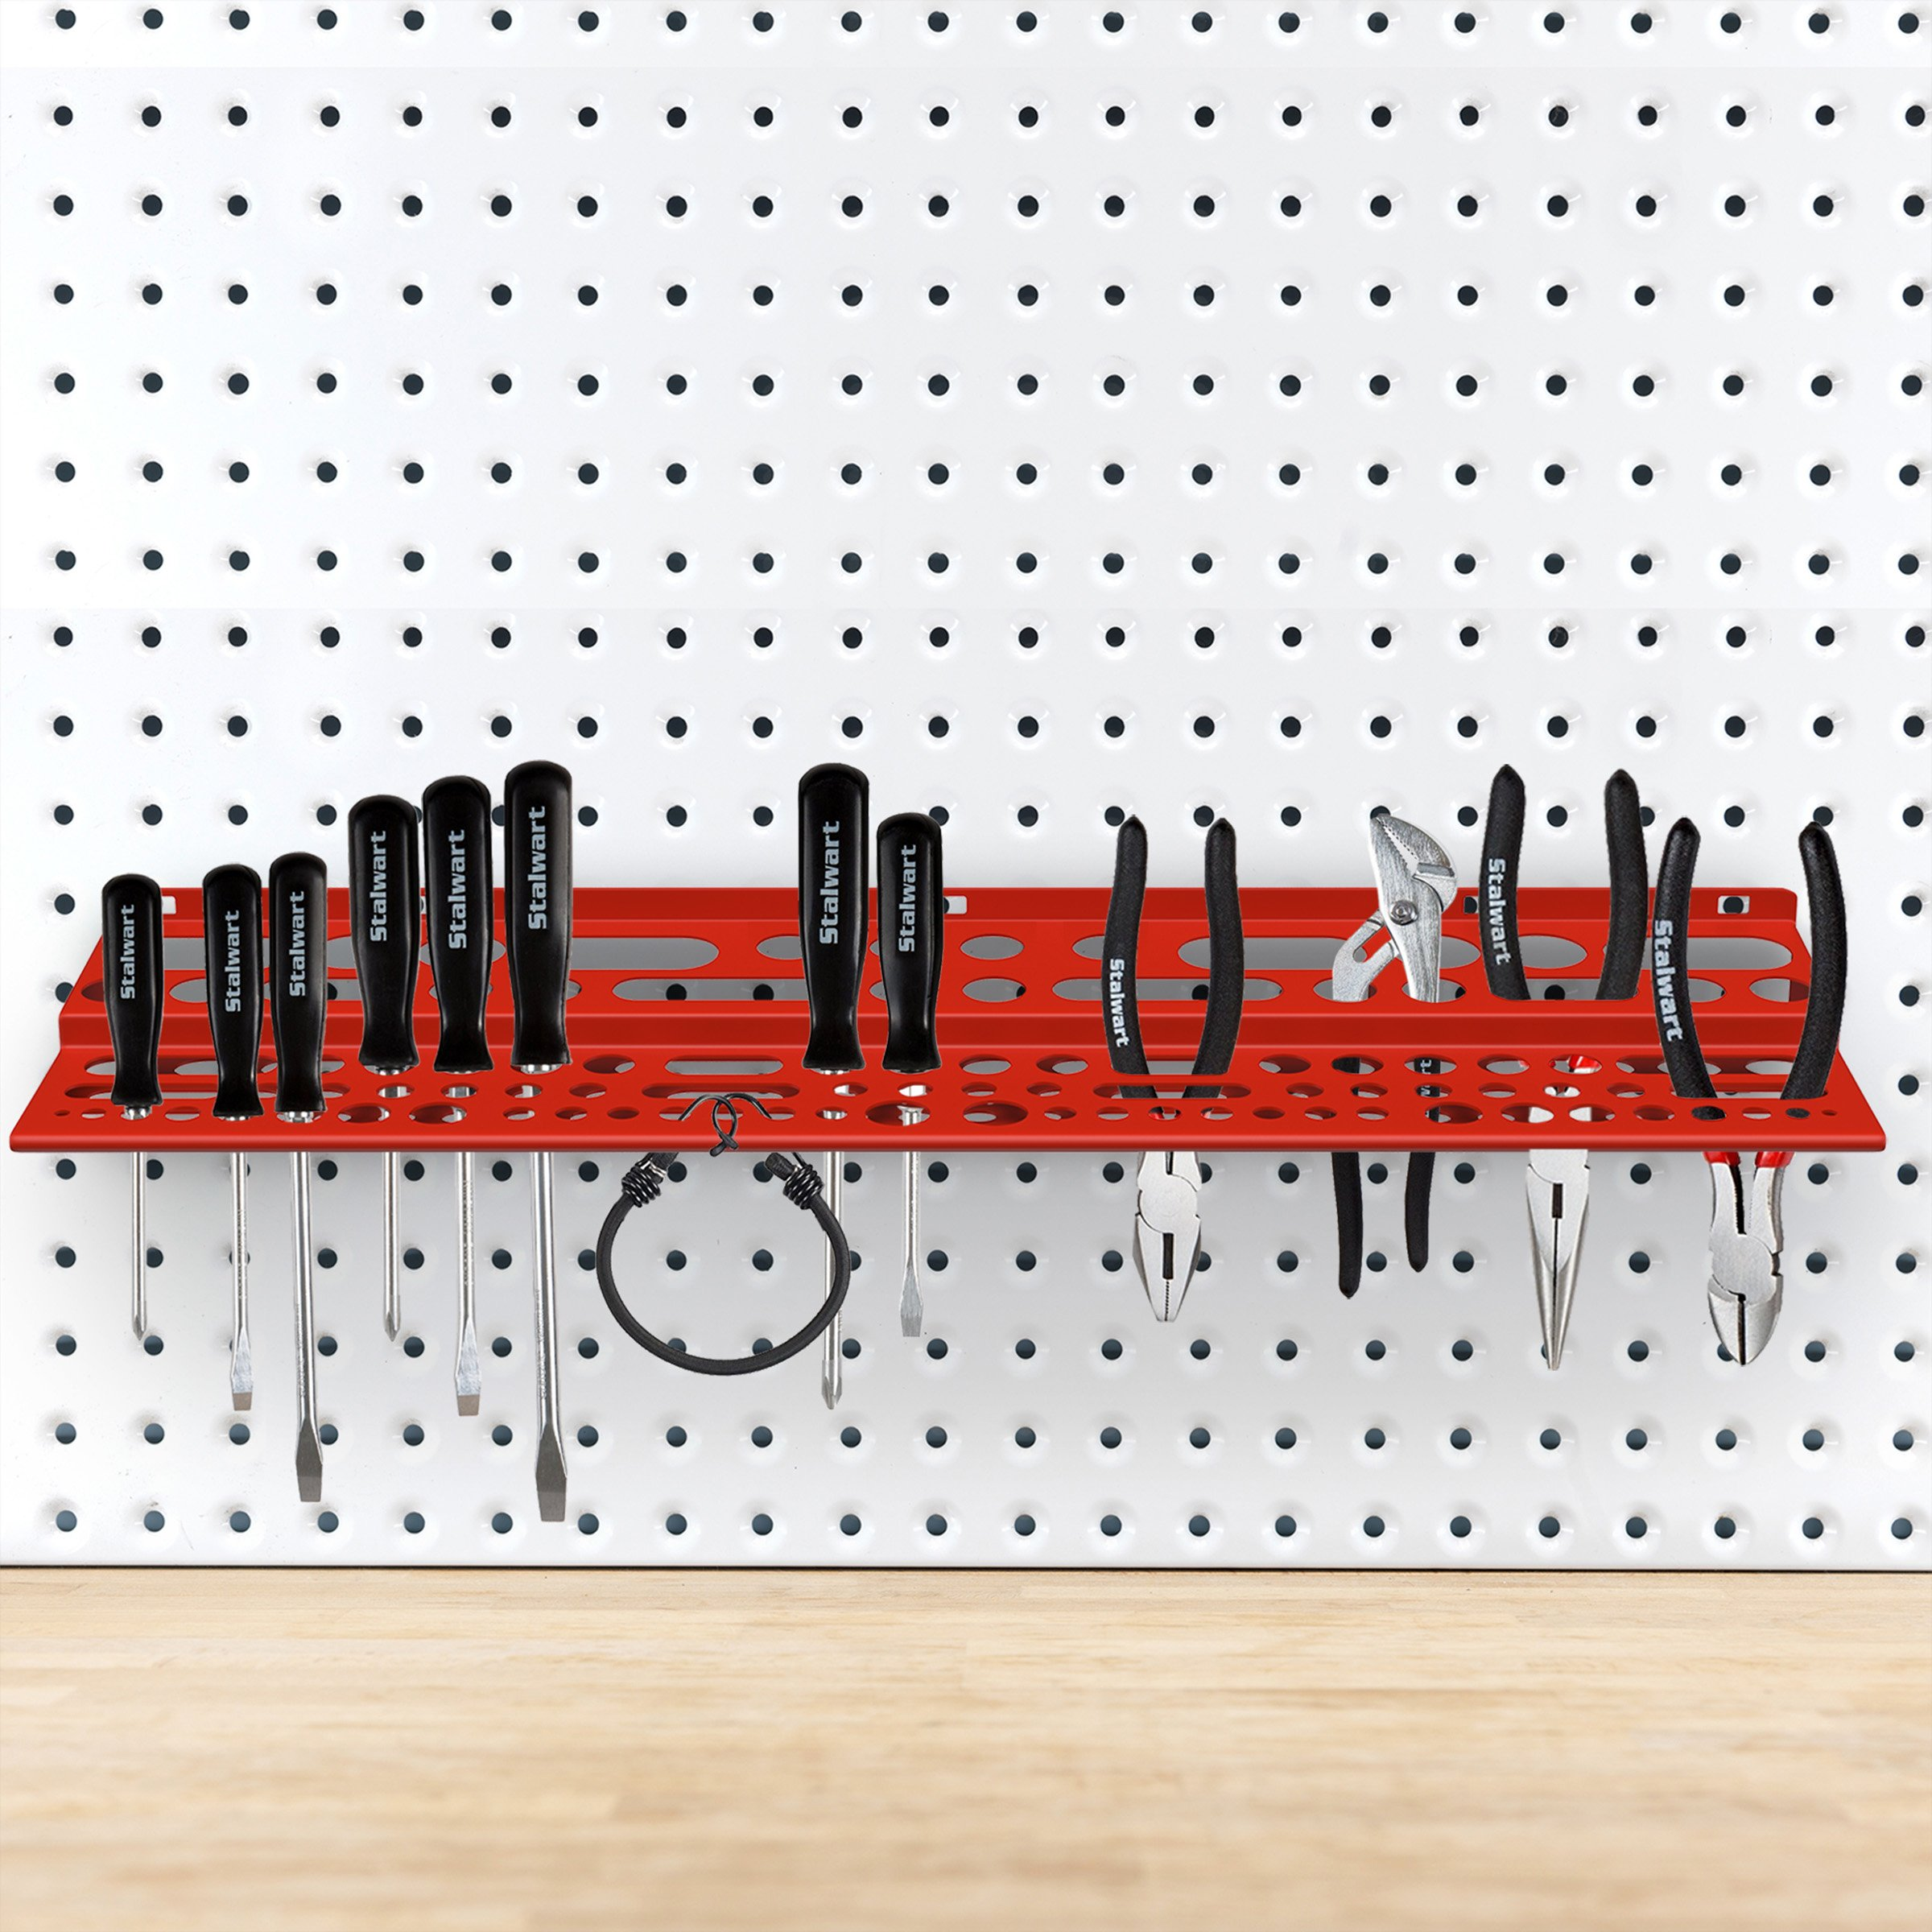 Mountable Tool Storage Shelf for Garage, Shed or Work Shop Organization- Wall Mount Multi Level Organizer Rack, Holds Up To 96 Tools by Stalwart by Stalwart (Image #4)